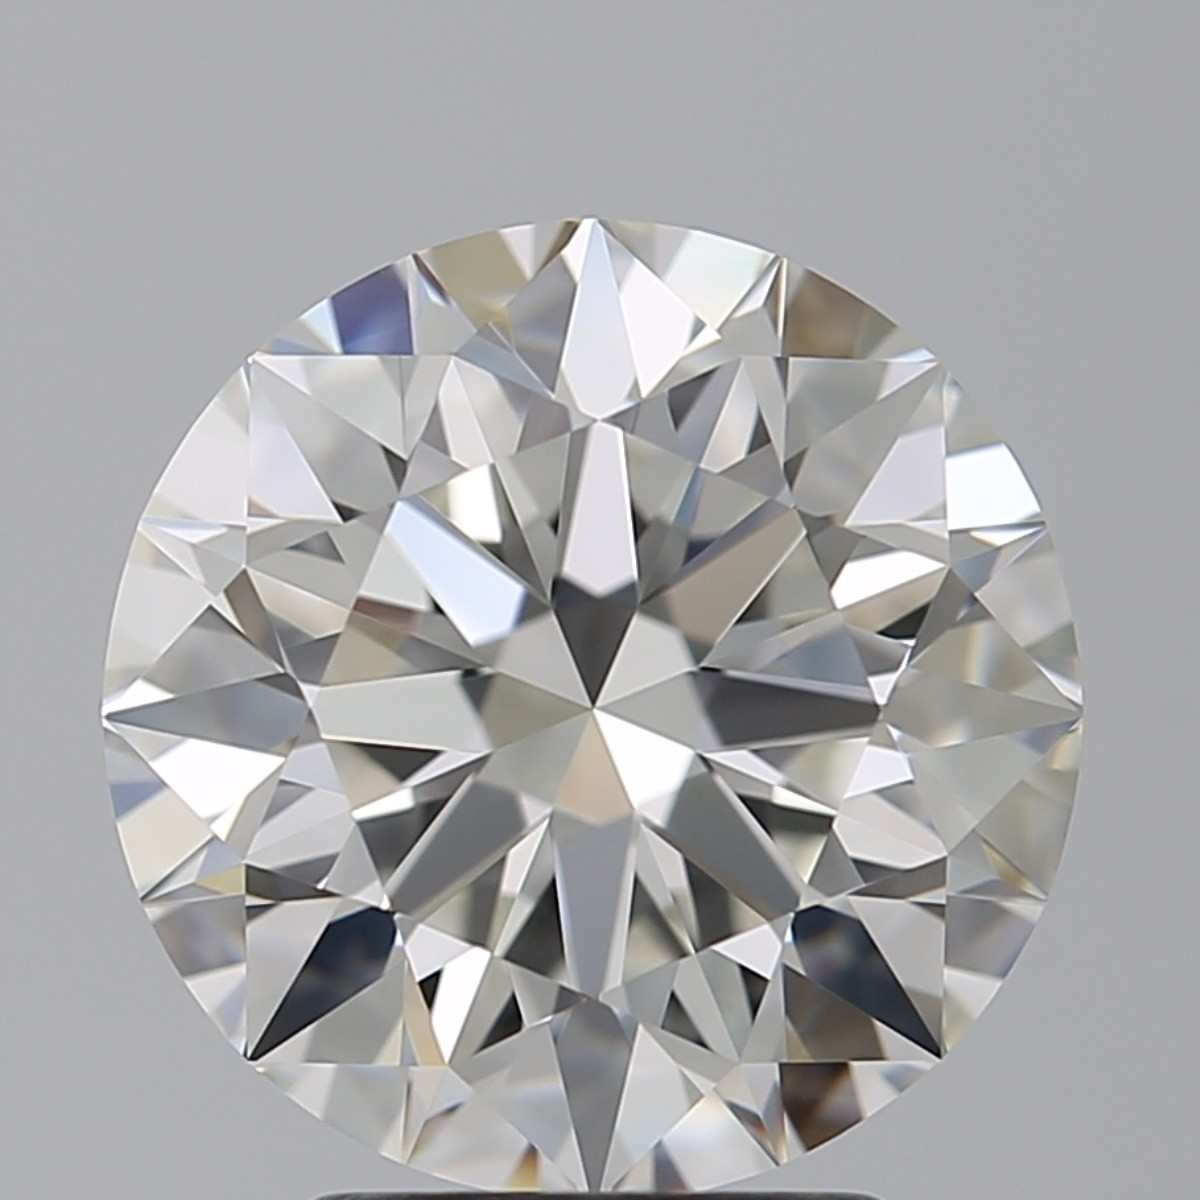 3.31 Carat Round Brilliant Diamond (H/VVS1)